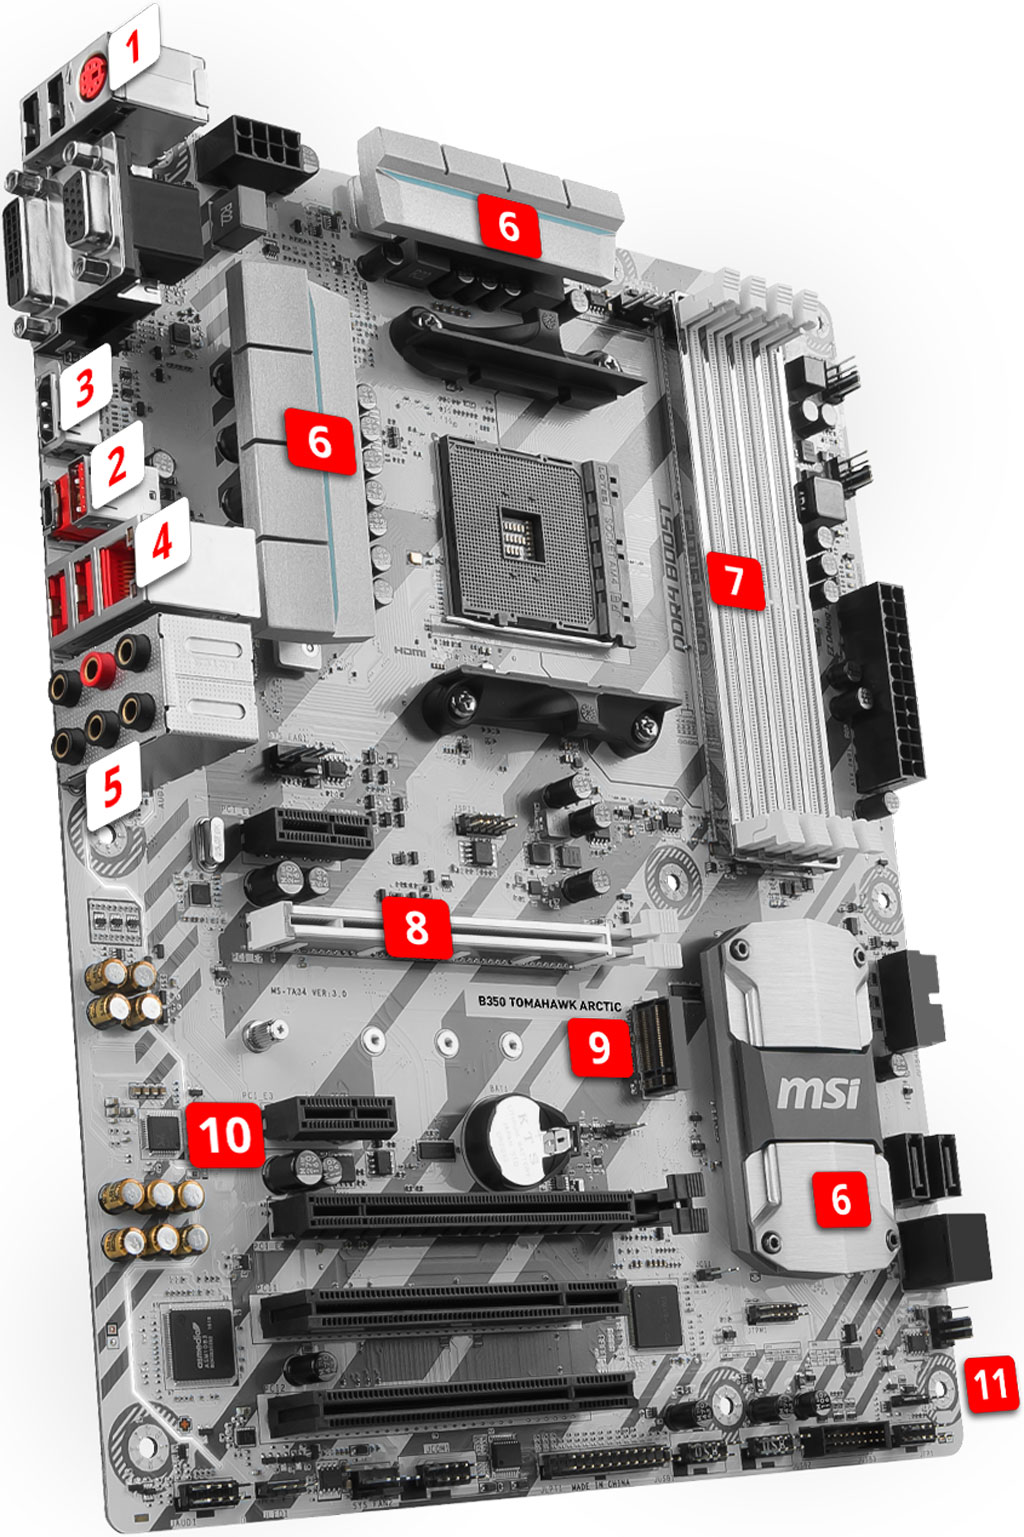 MSI X370 KRAIT GAMING overview